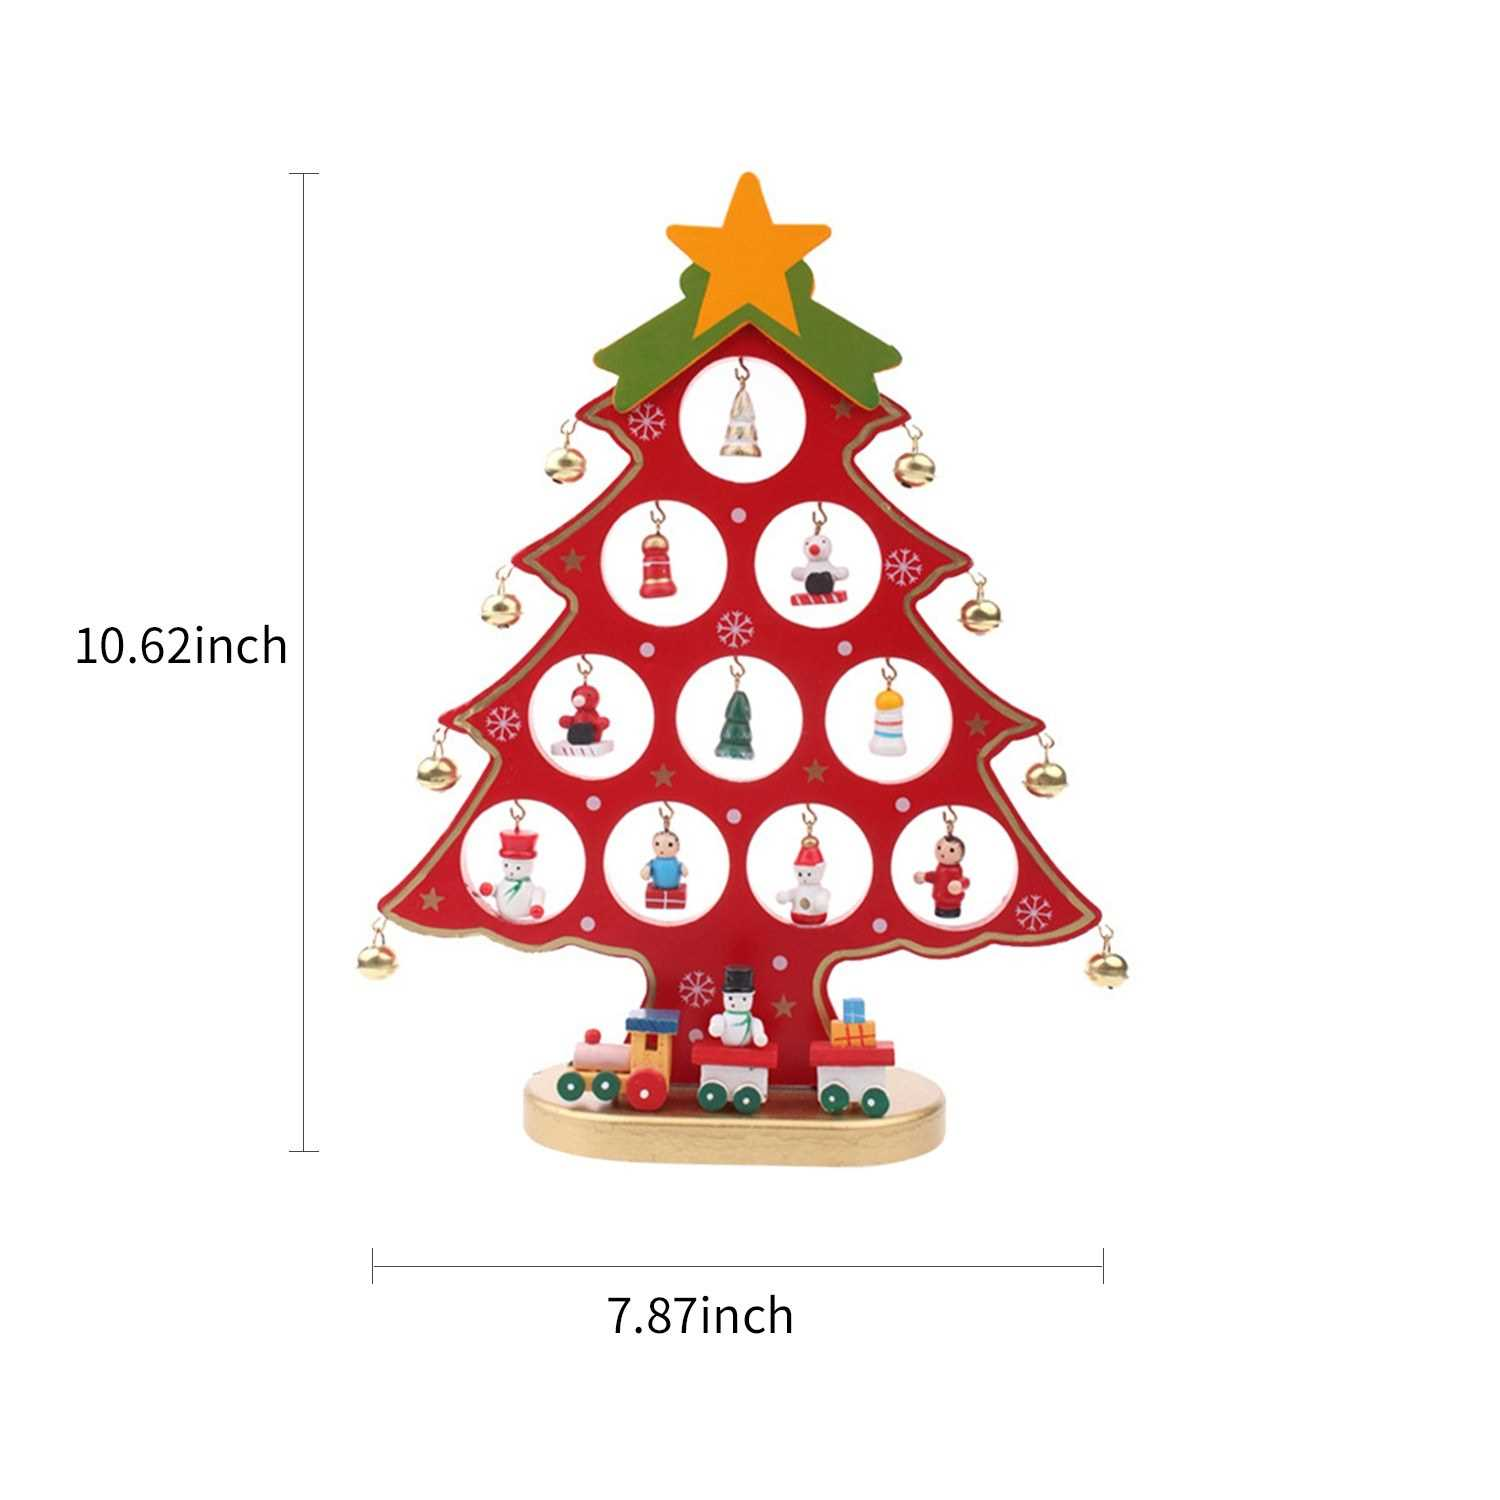 10 62 Inch Christmas Tree With Hanging Decorations Decorative Wooden Xmas Tree Hanging Ornaments For Indoor Outdoor